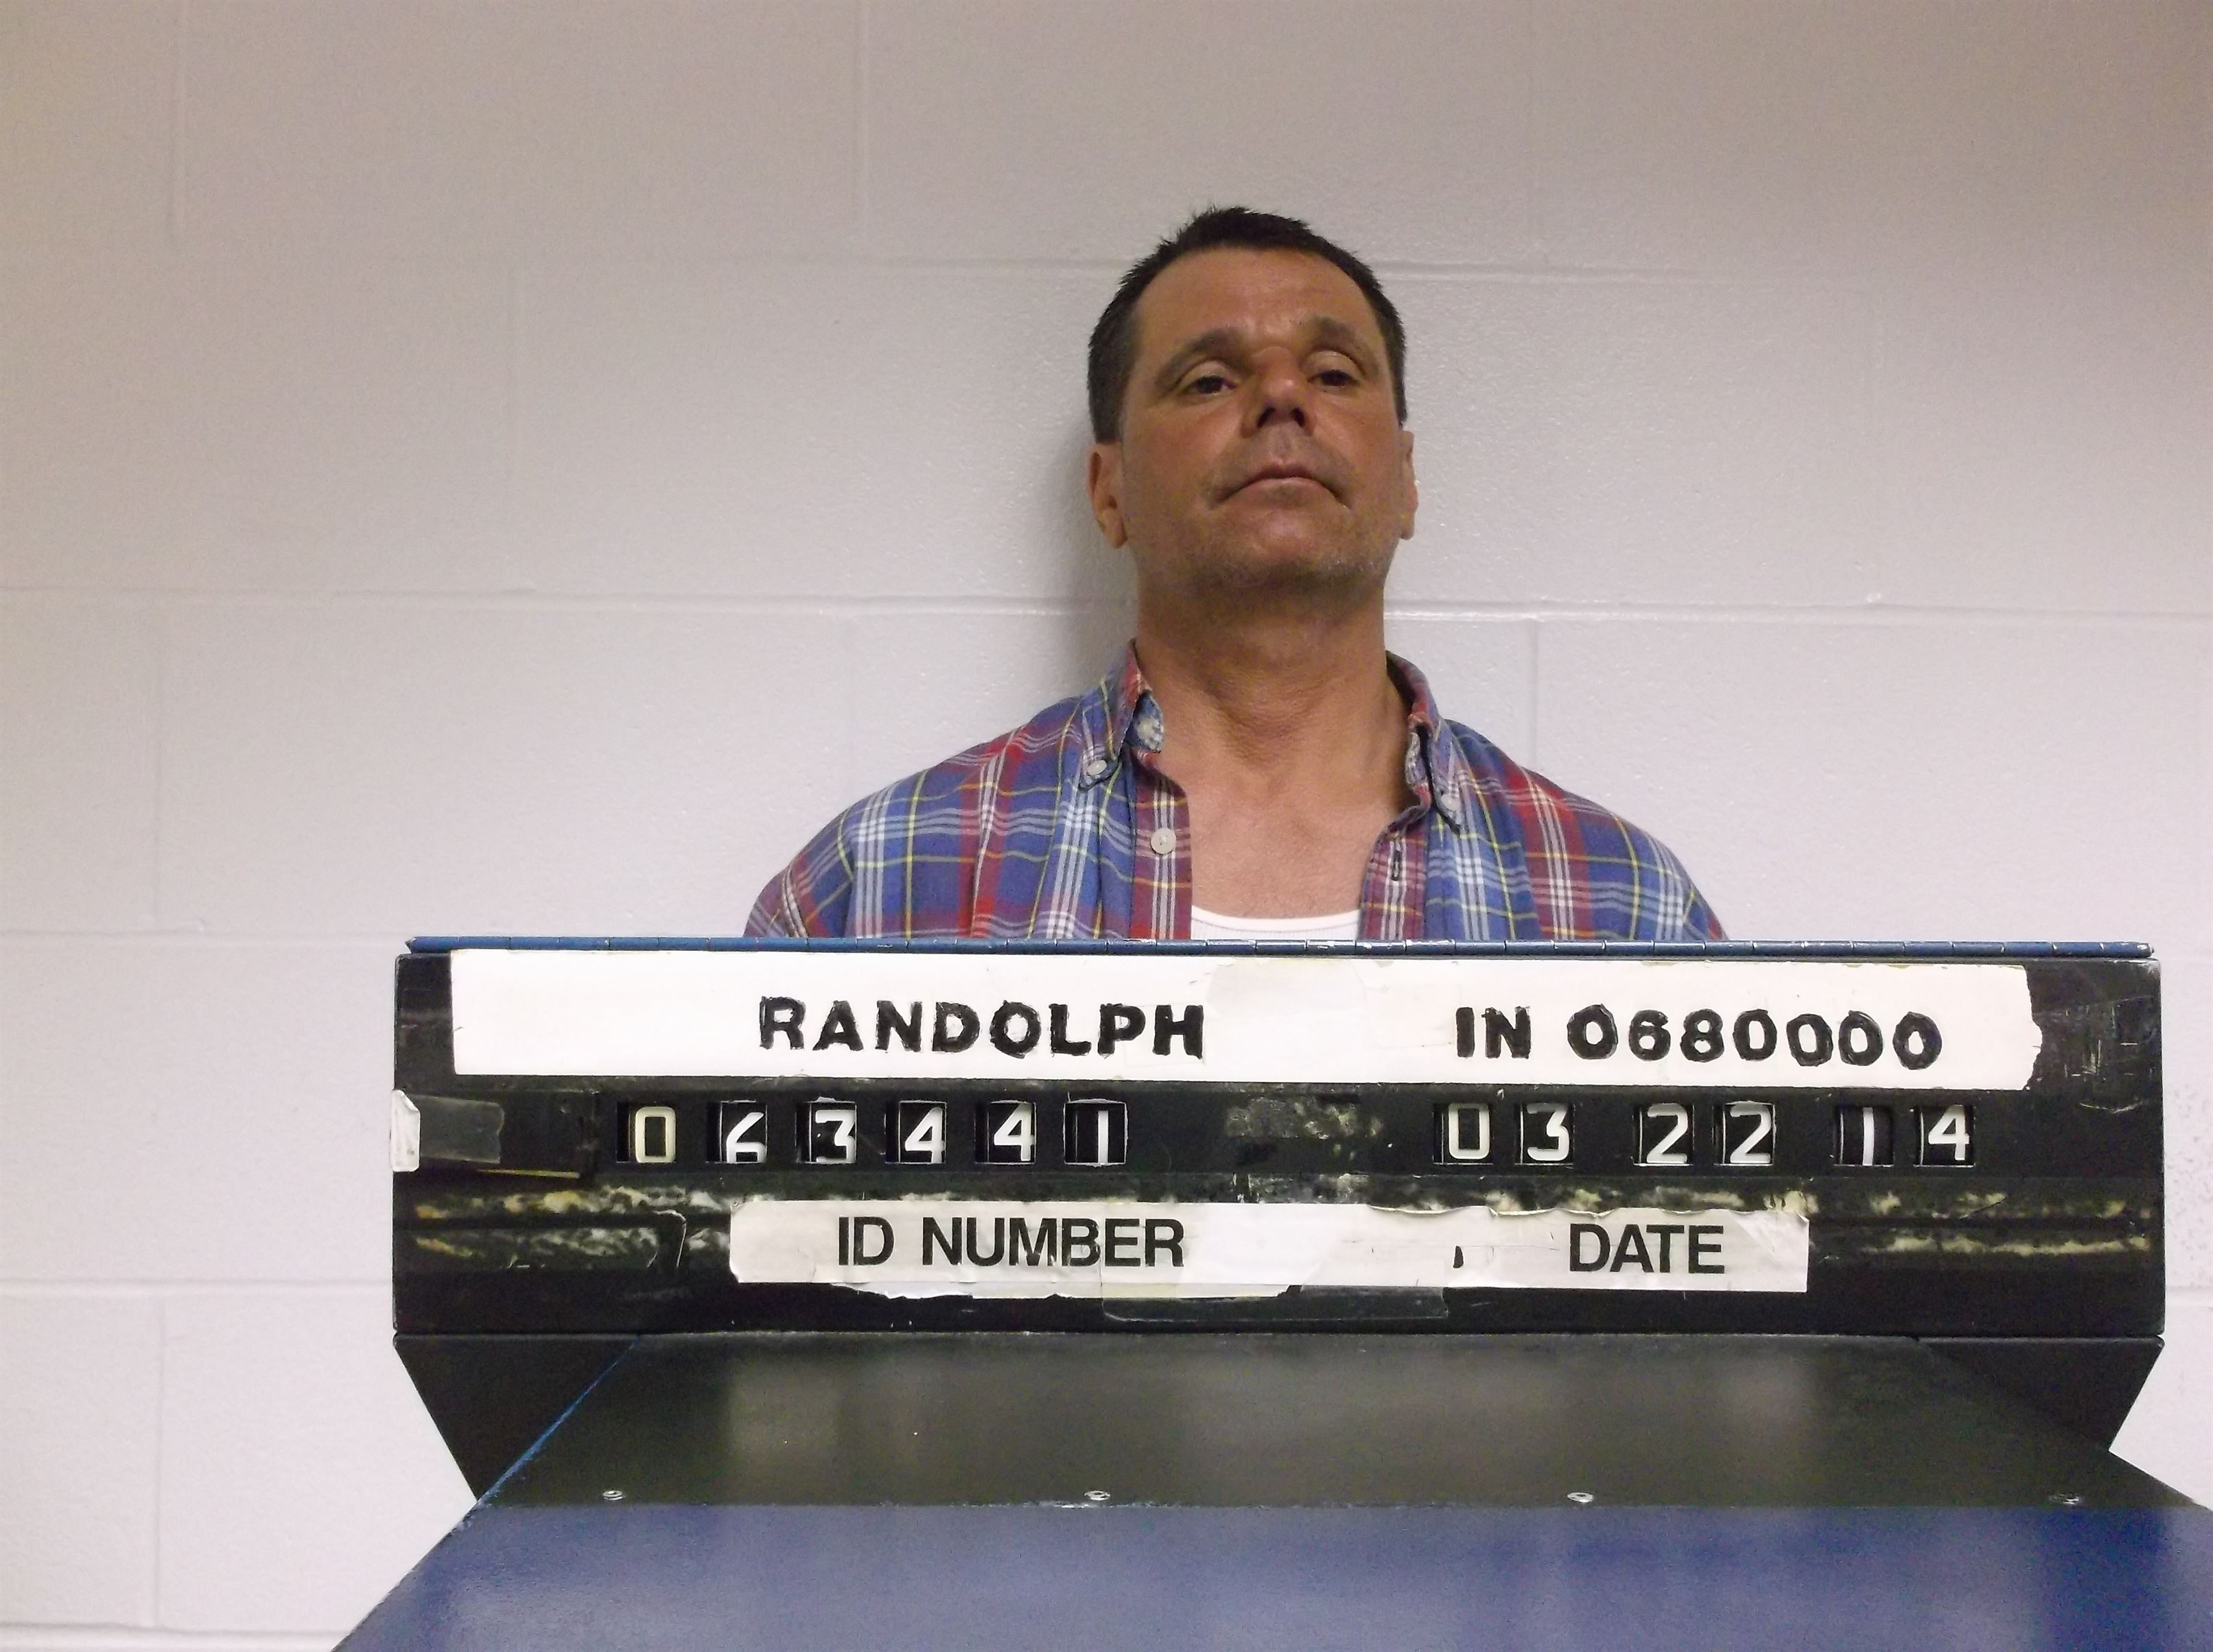 orville lynn majors v state indiana criminal Orville lynn majors (april 24, 1961 – september 24, 2017) from linton, indiana , was a licensed practical nurse and serial killer , who was convicted of murdering his patients in clinton, indiana.